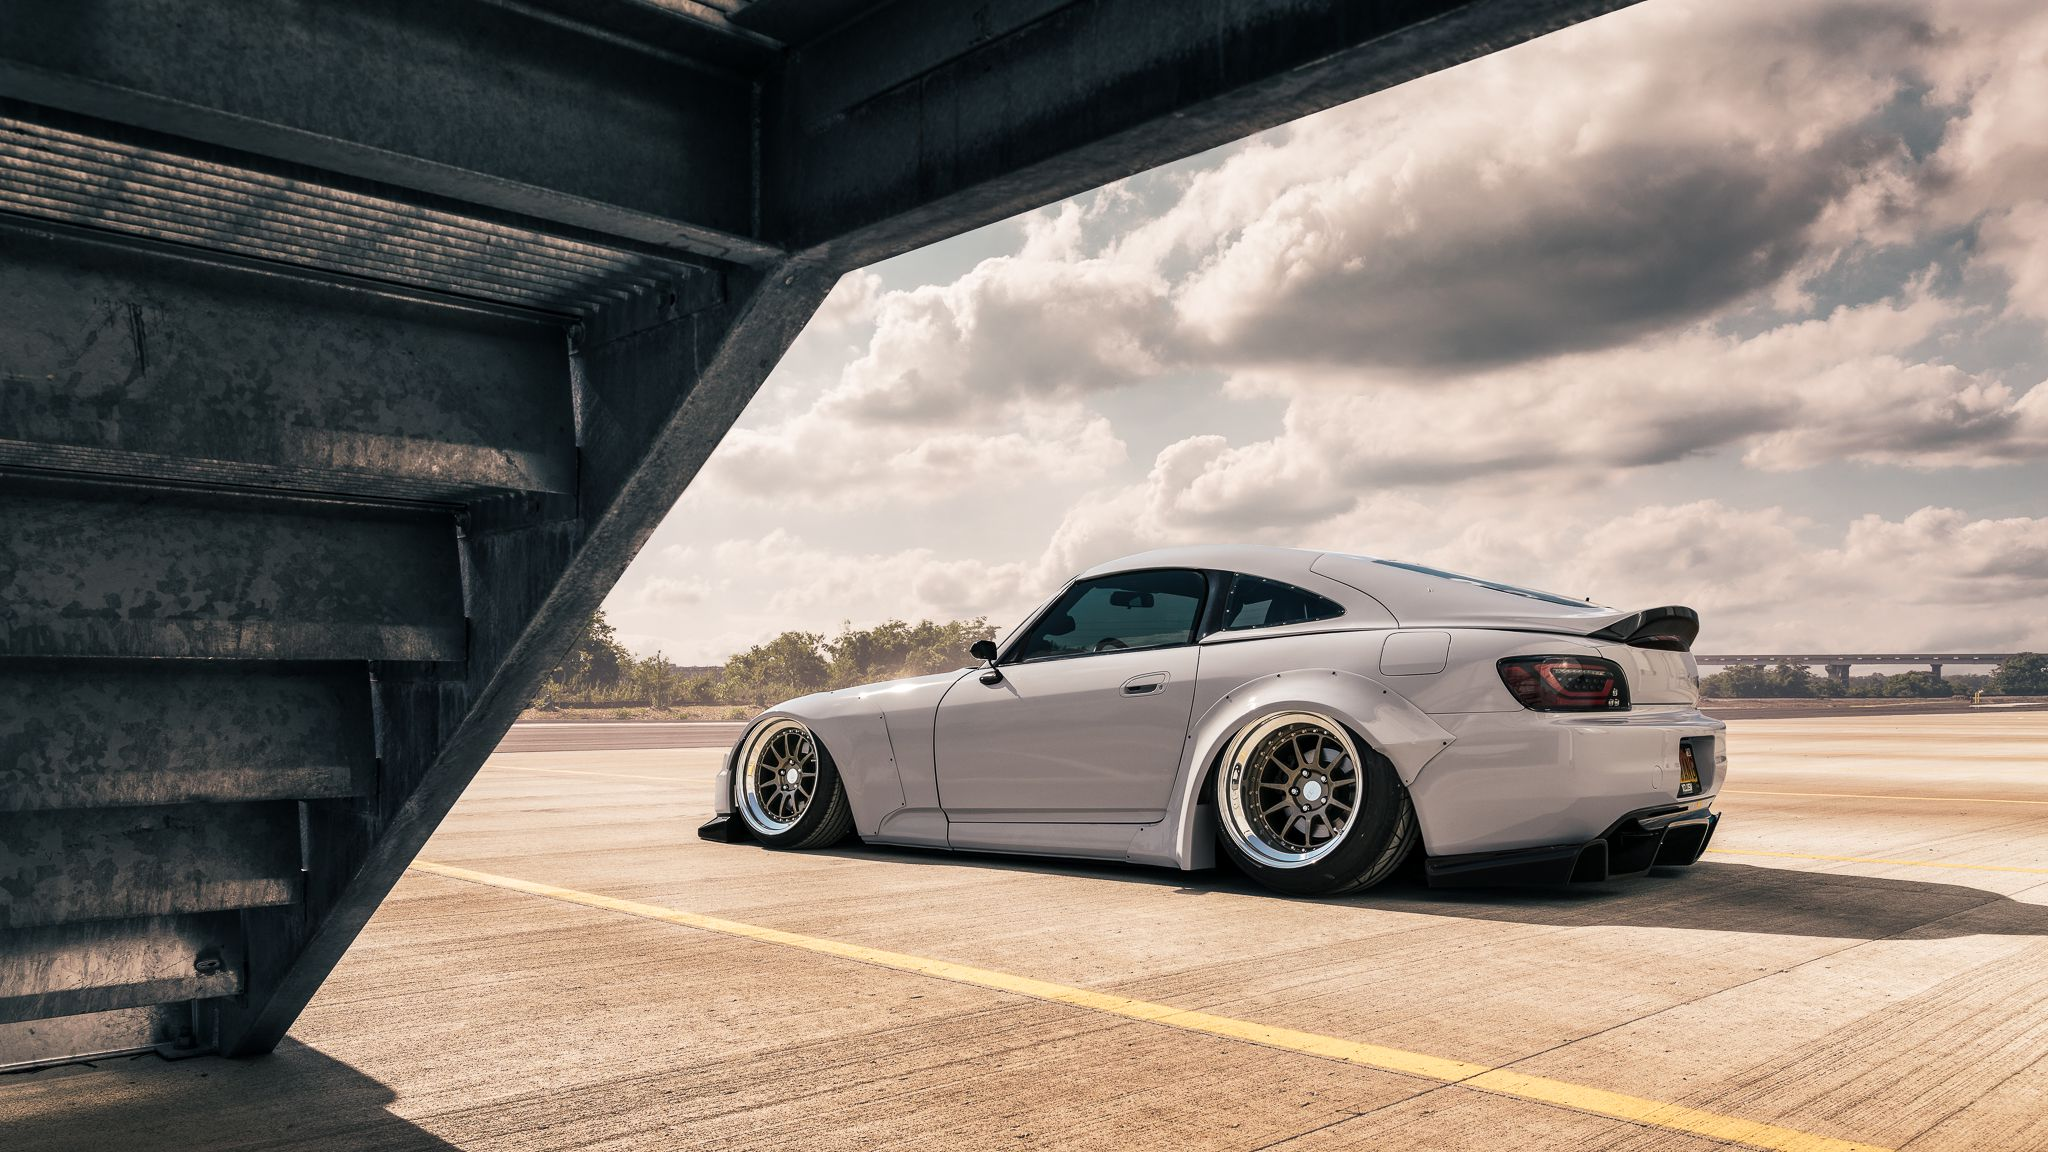 Tuned Honda s2000 side view